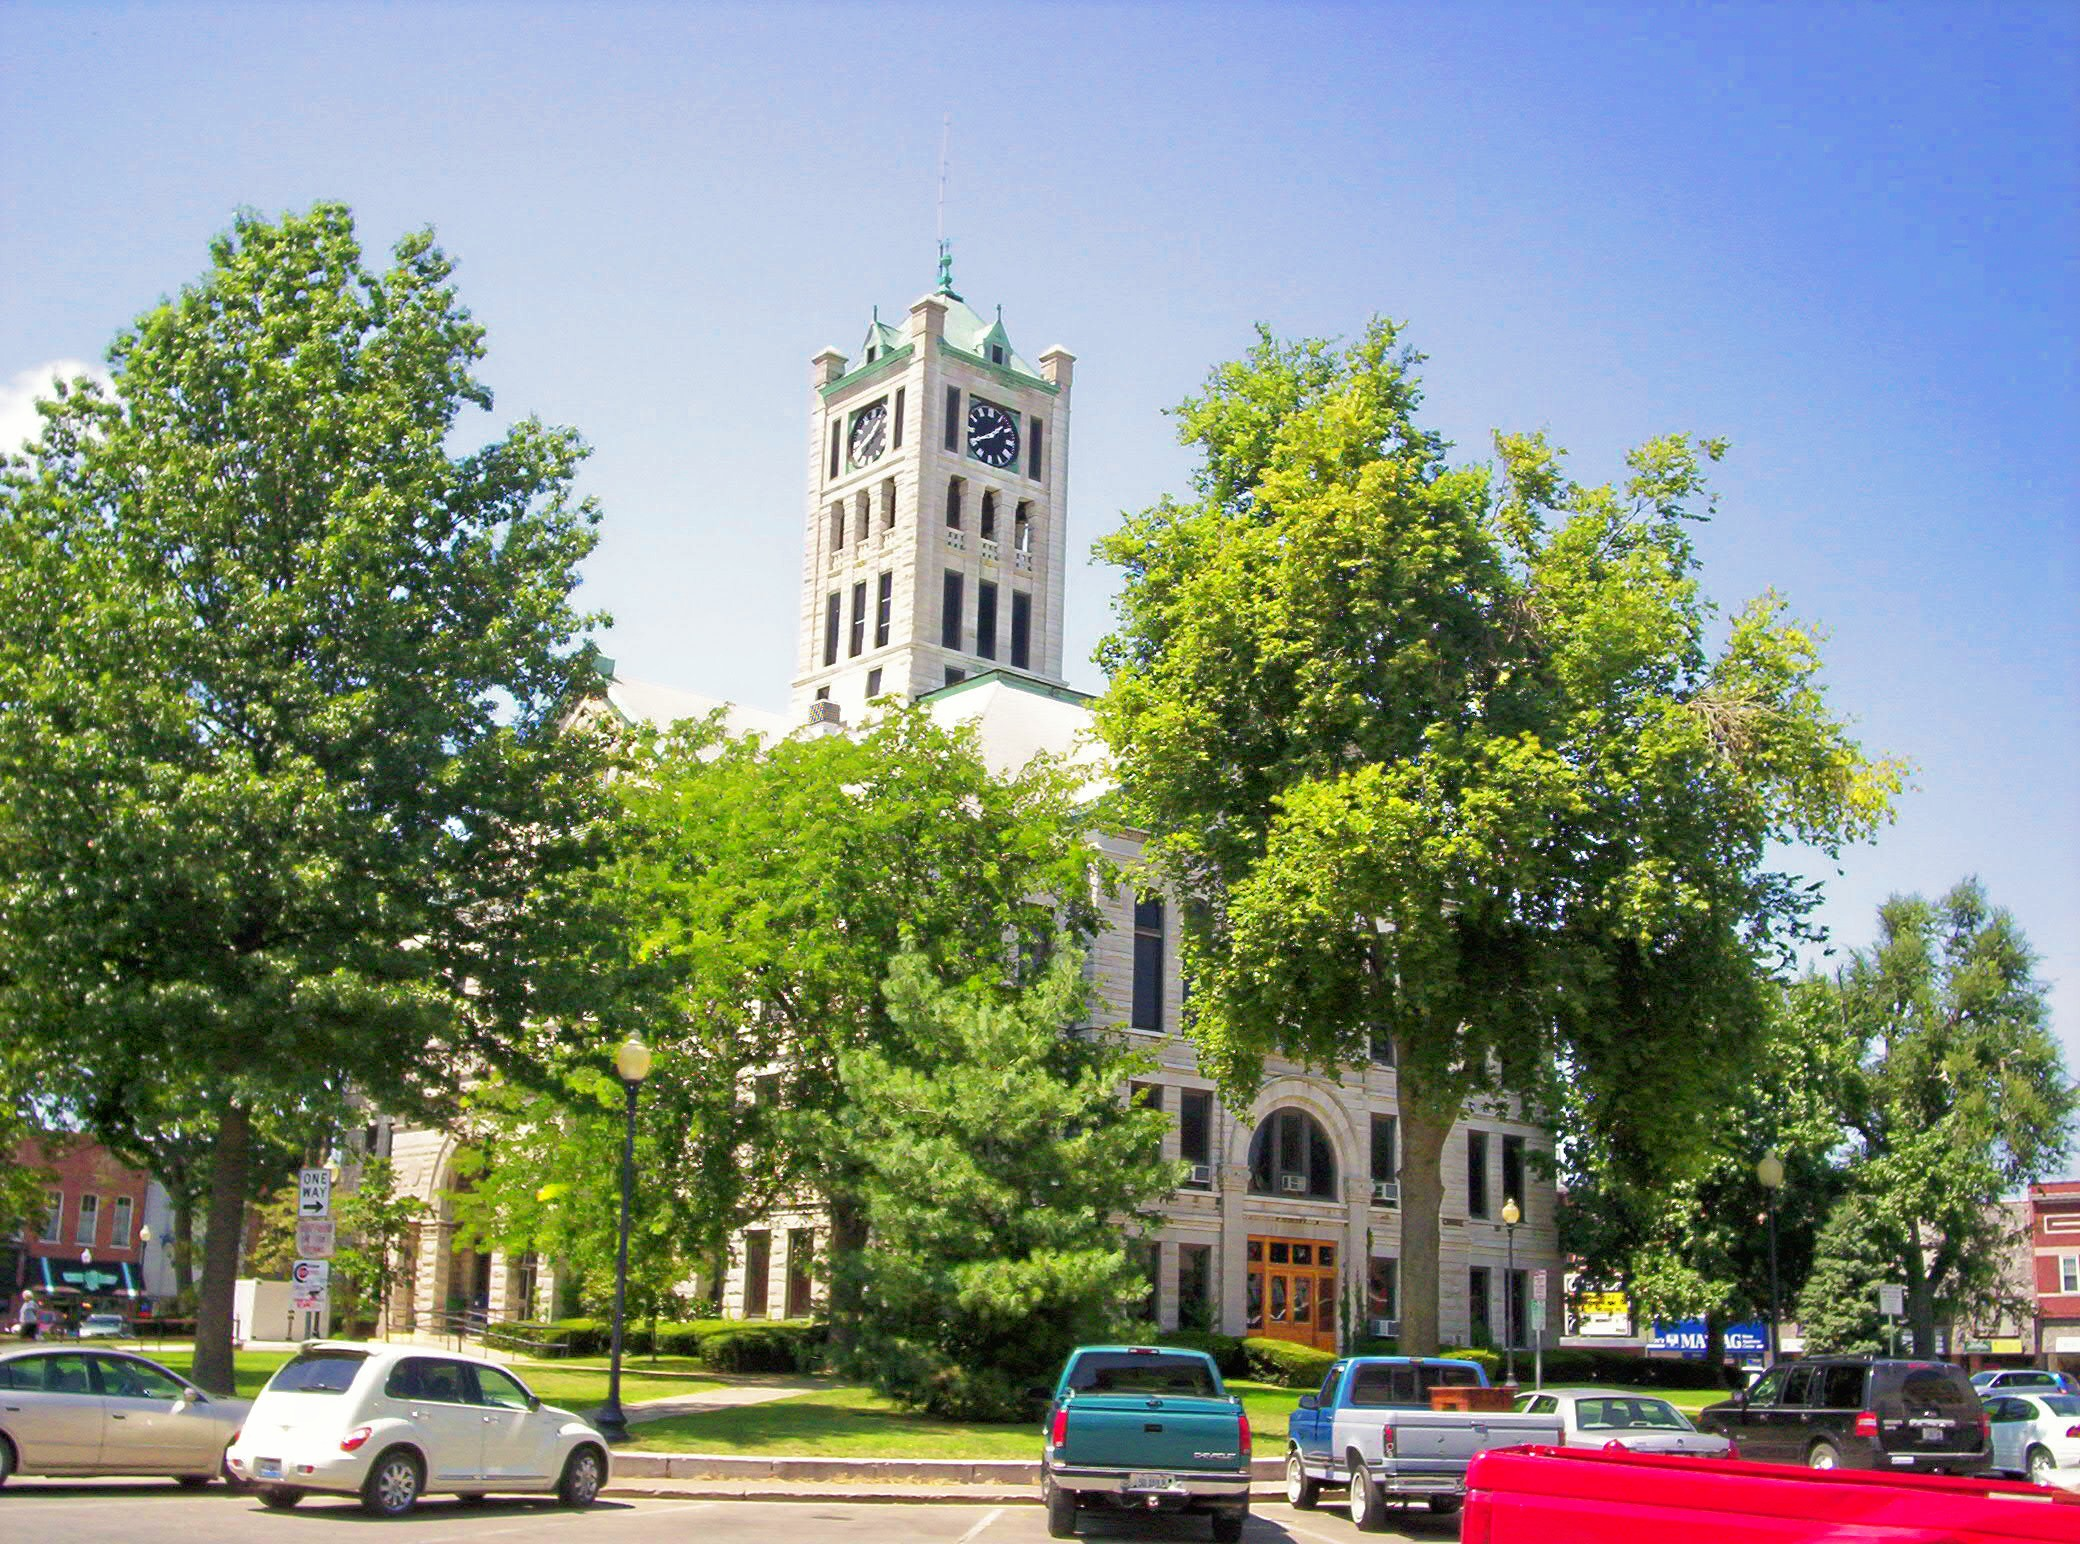 The Christian County Courthouse in Taylorville, Illinois